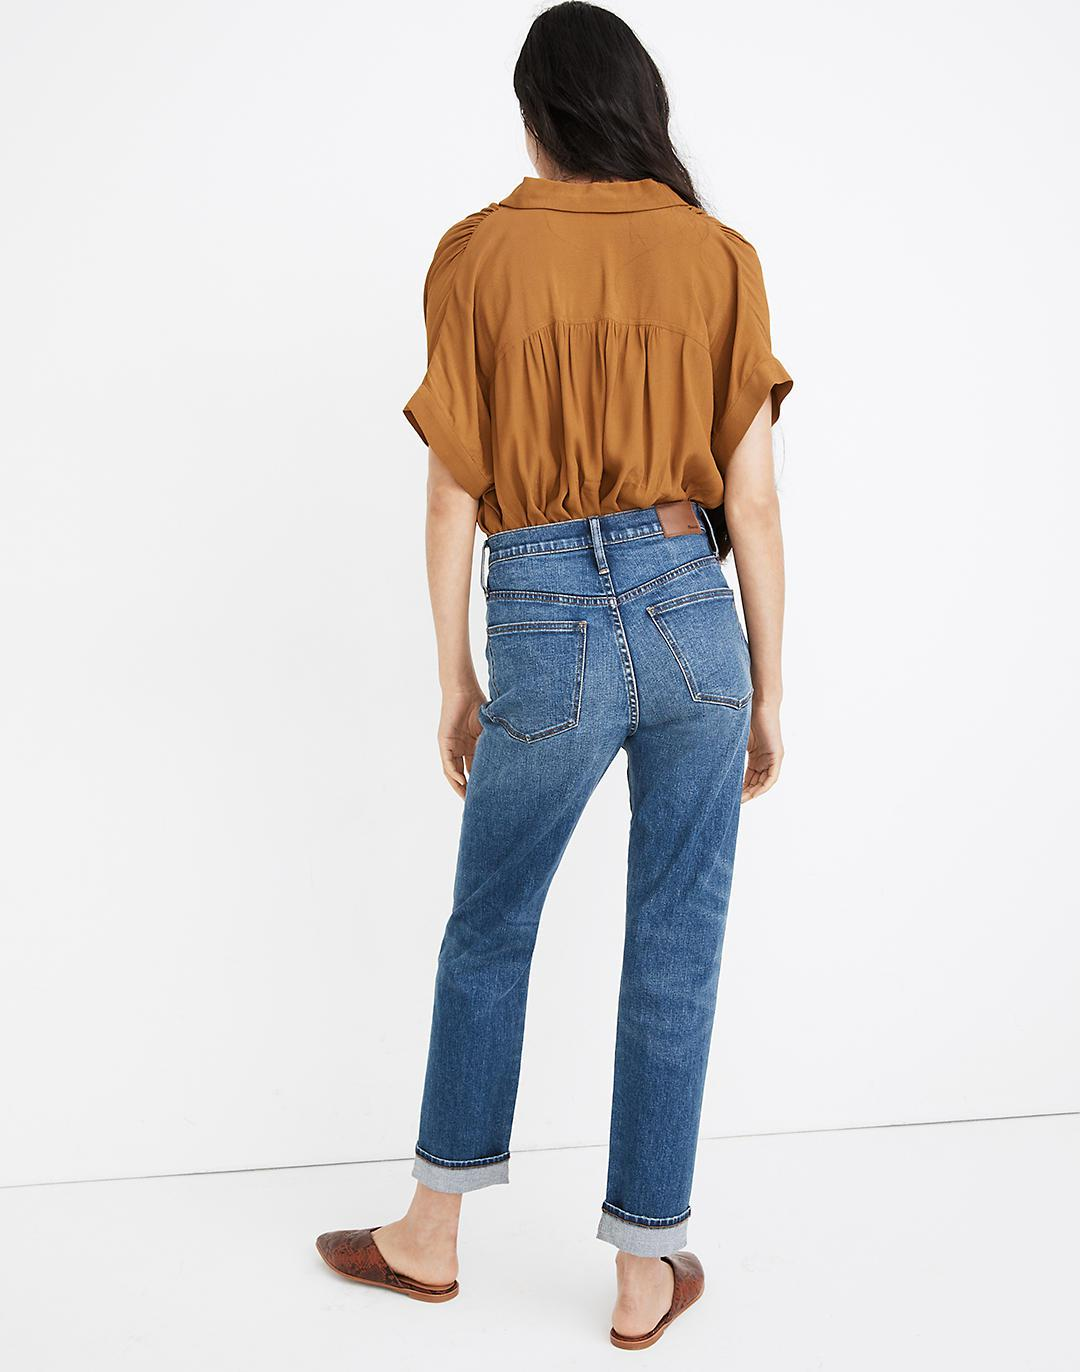 Tall Classic Straight Jeans in Ives Wash: Selvedge Edition 2